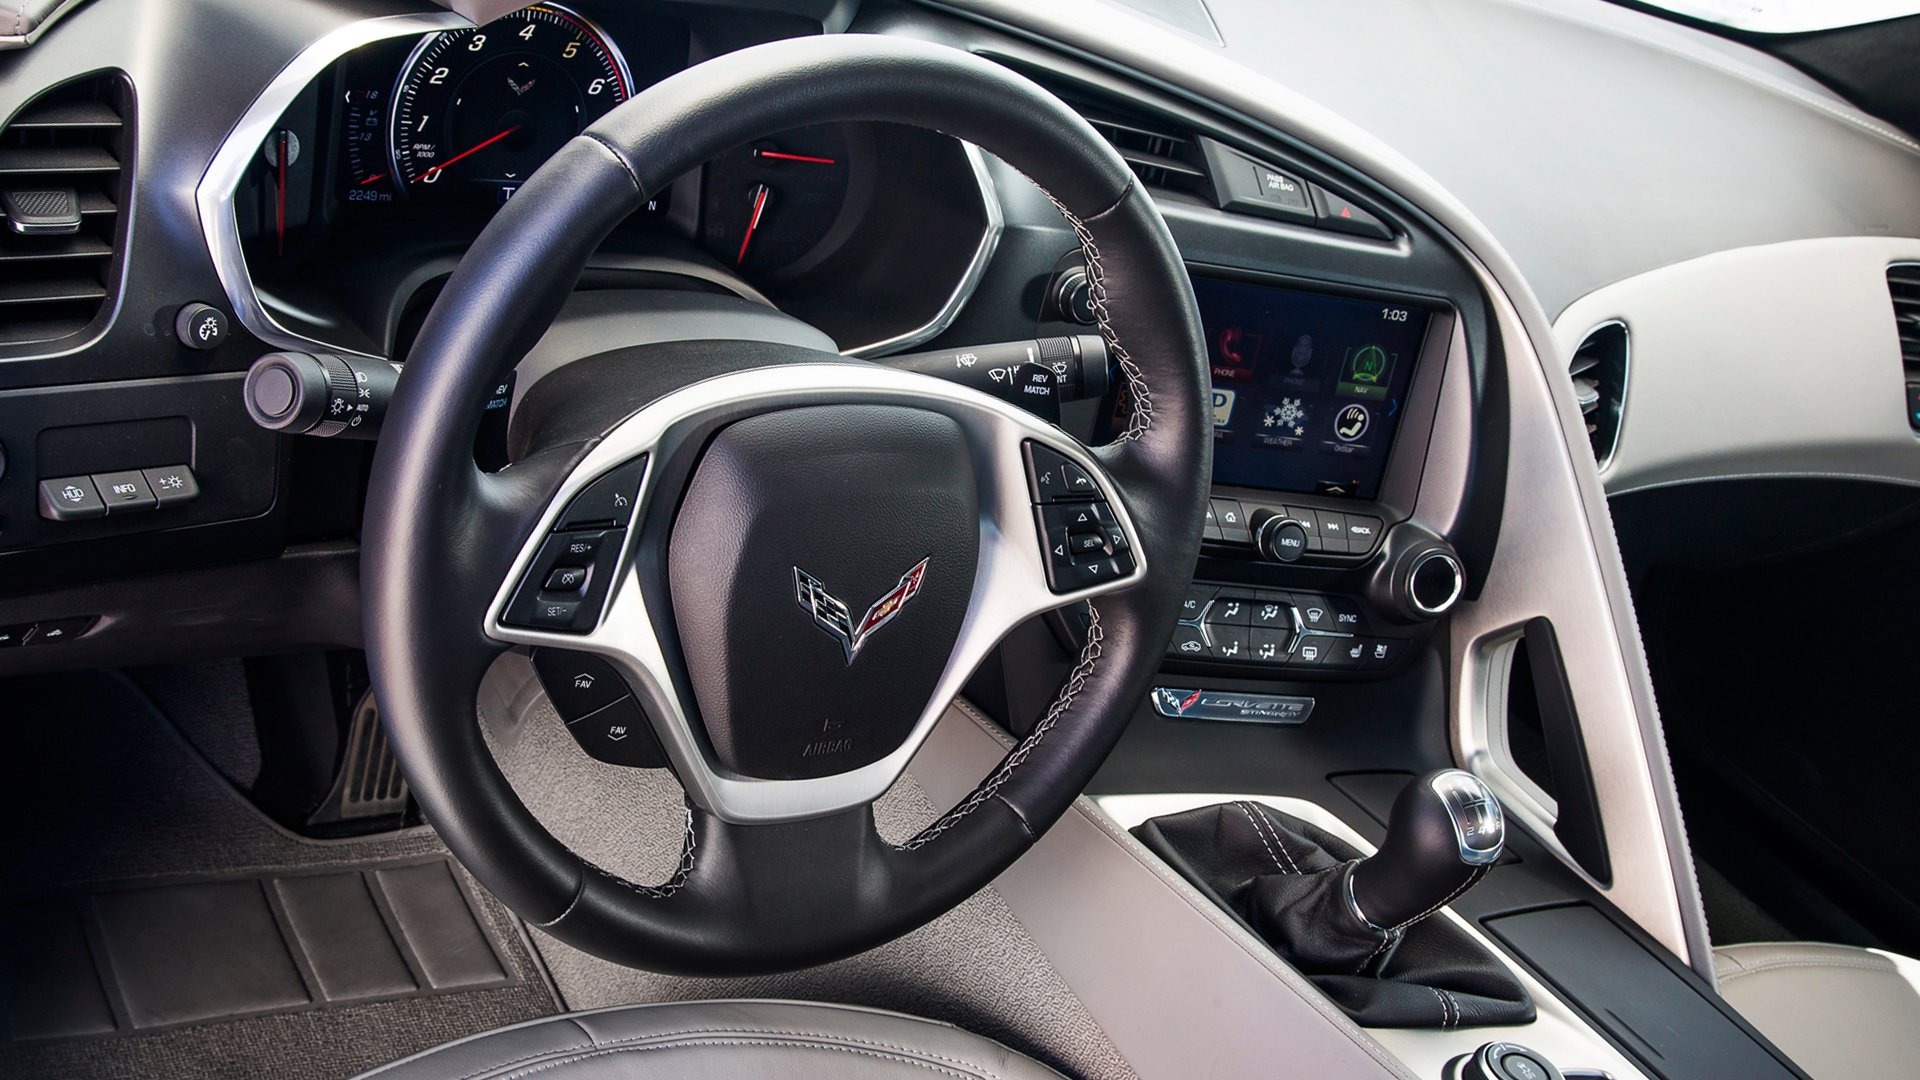 New 2019 Chevrolet Corvette Interior Design